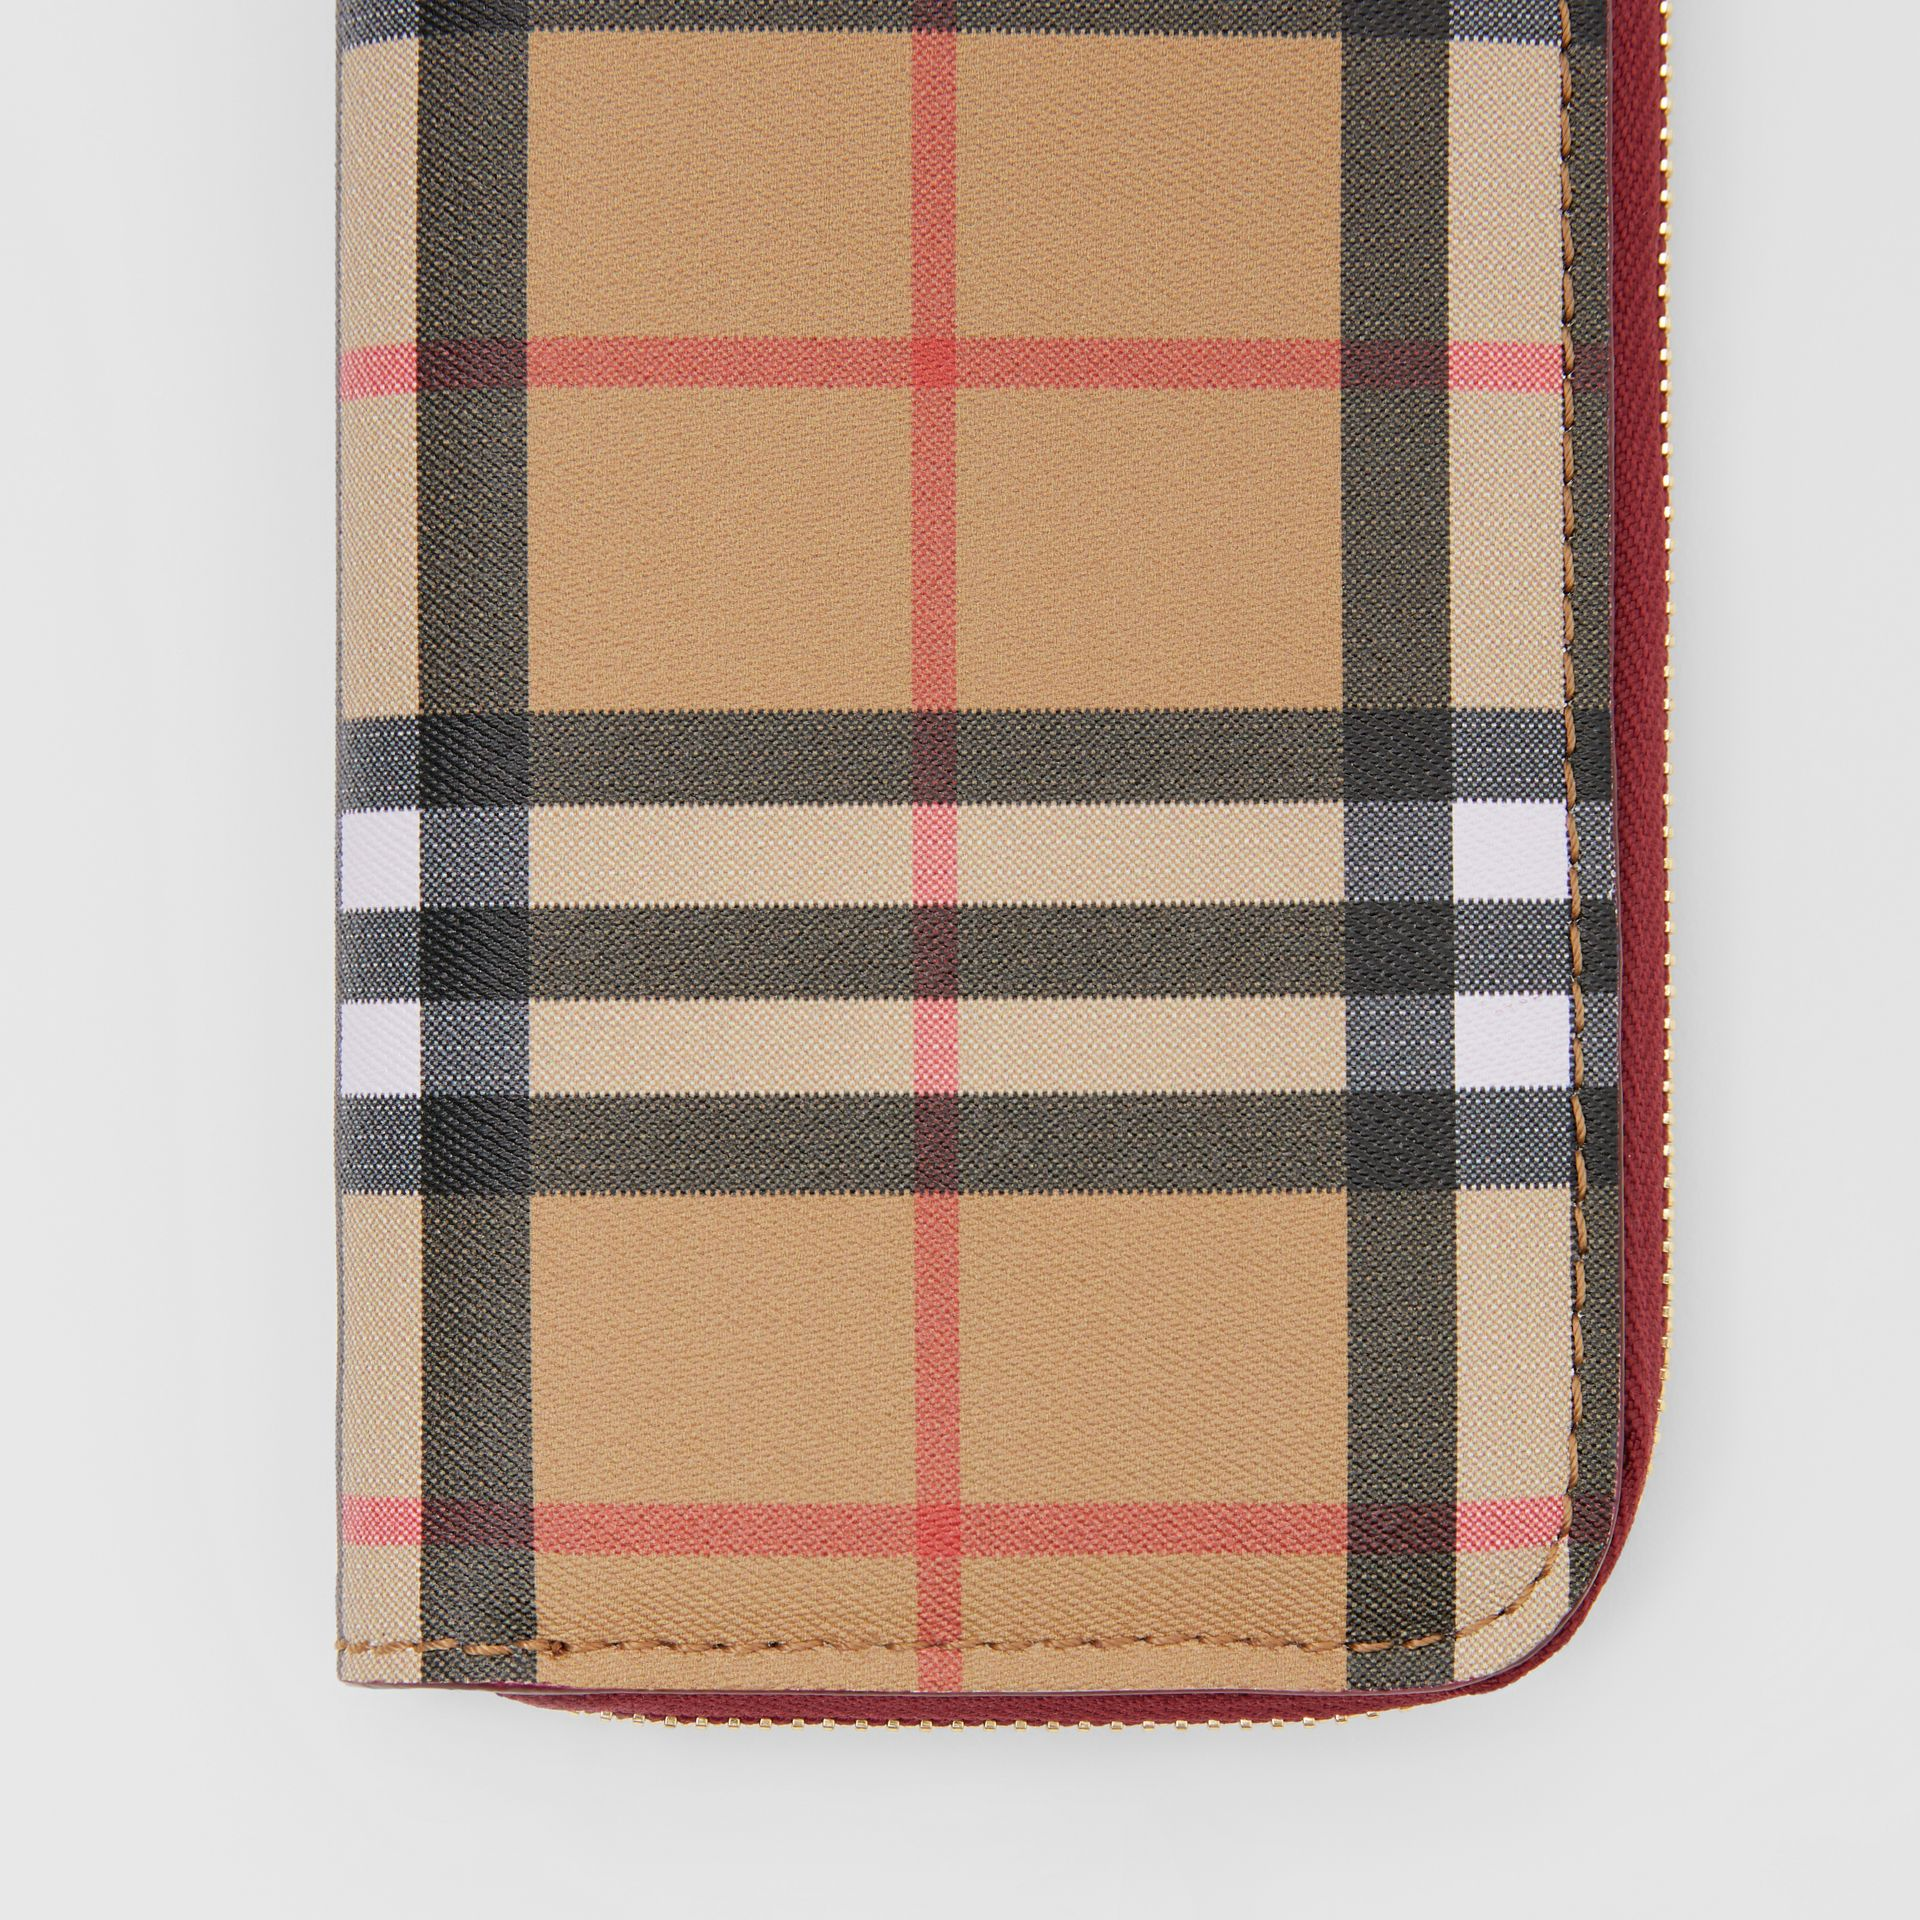 Vintage Check and Leather Ziparound Wallet in Crimson - Women | Burberry Singapore - gallery image 1